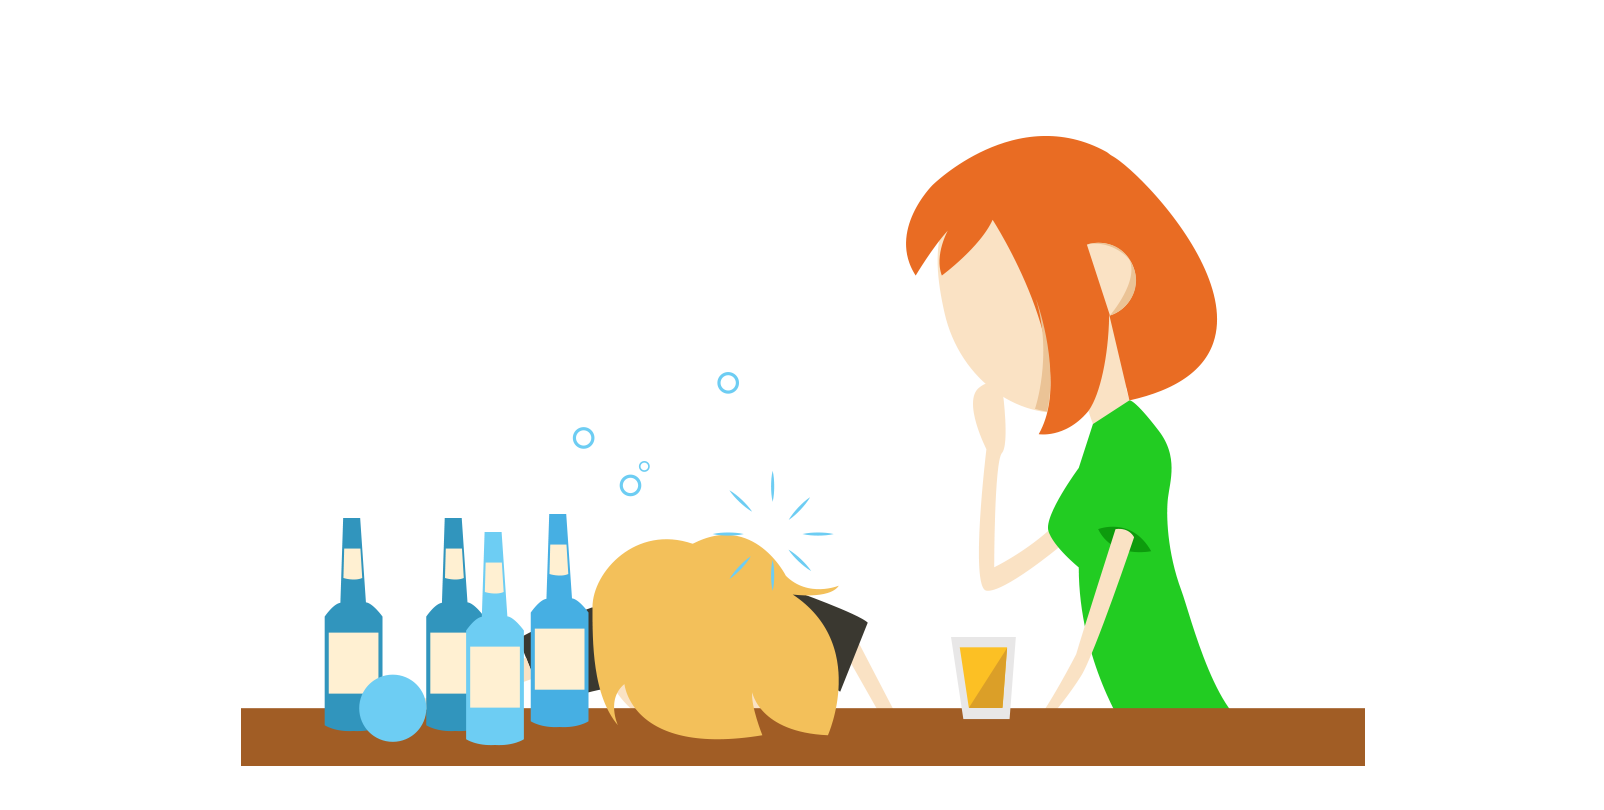 Worry clipart psychological abuse. Effects of alcohol addiction